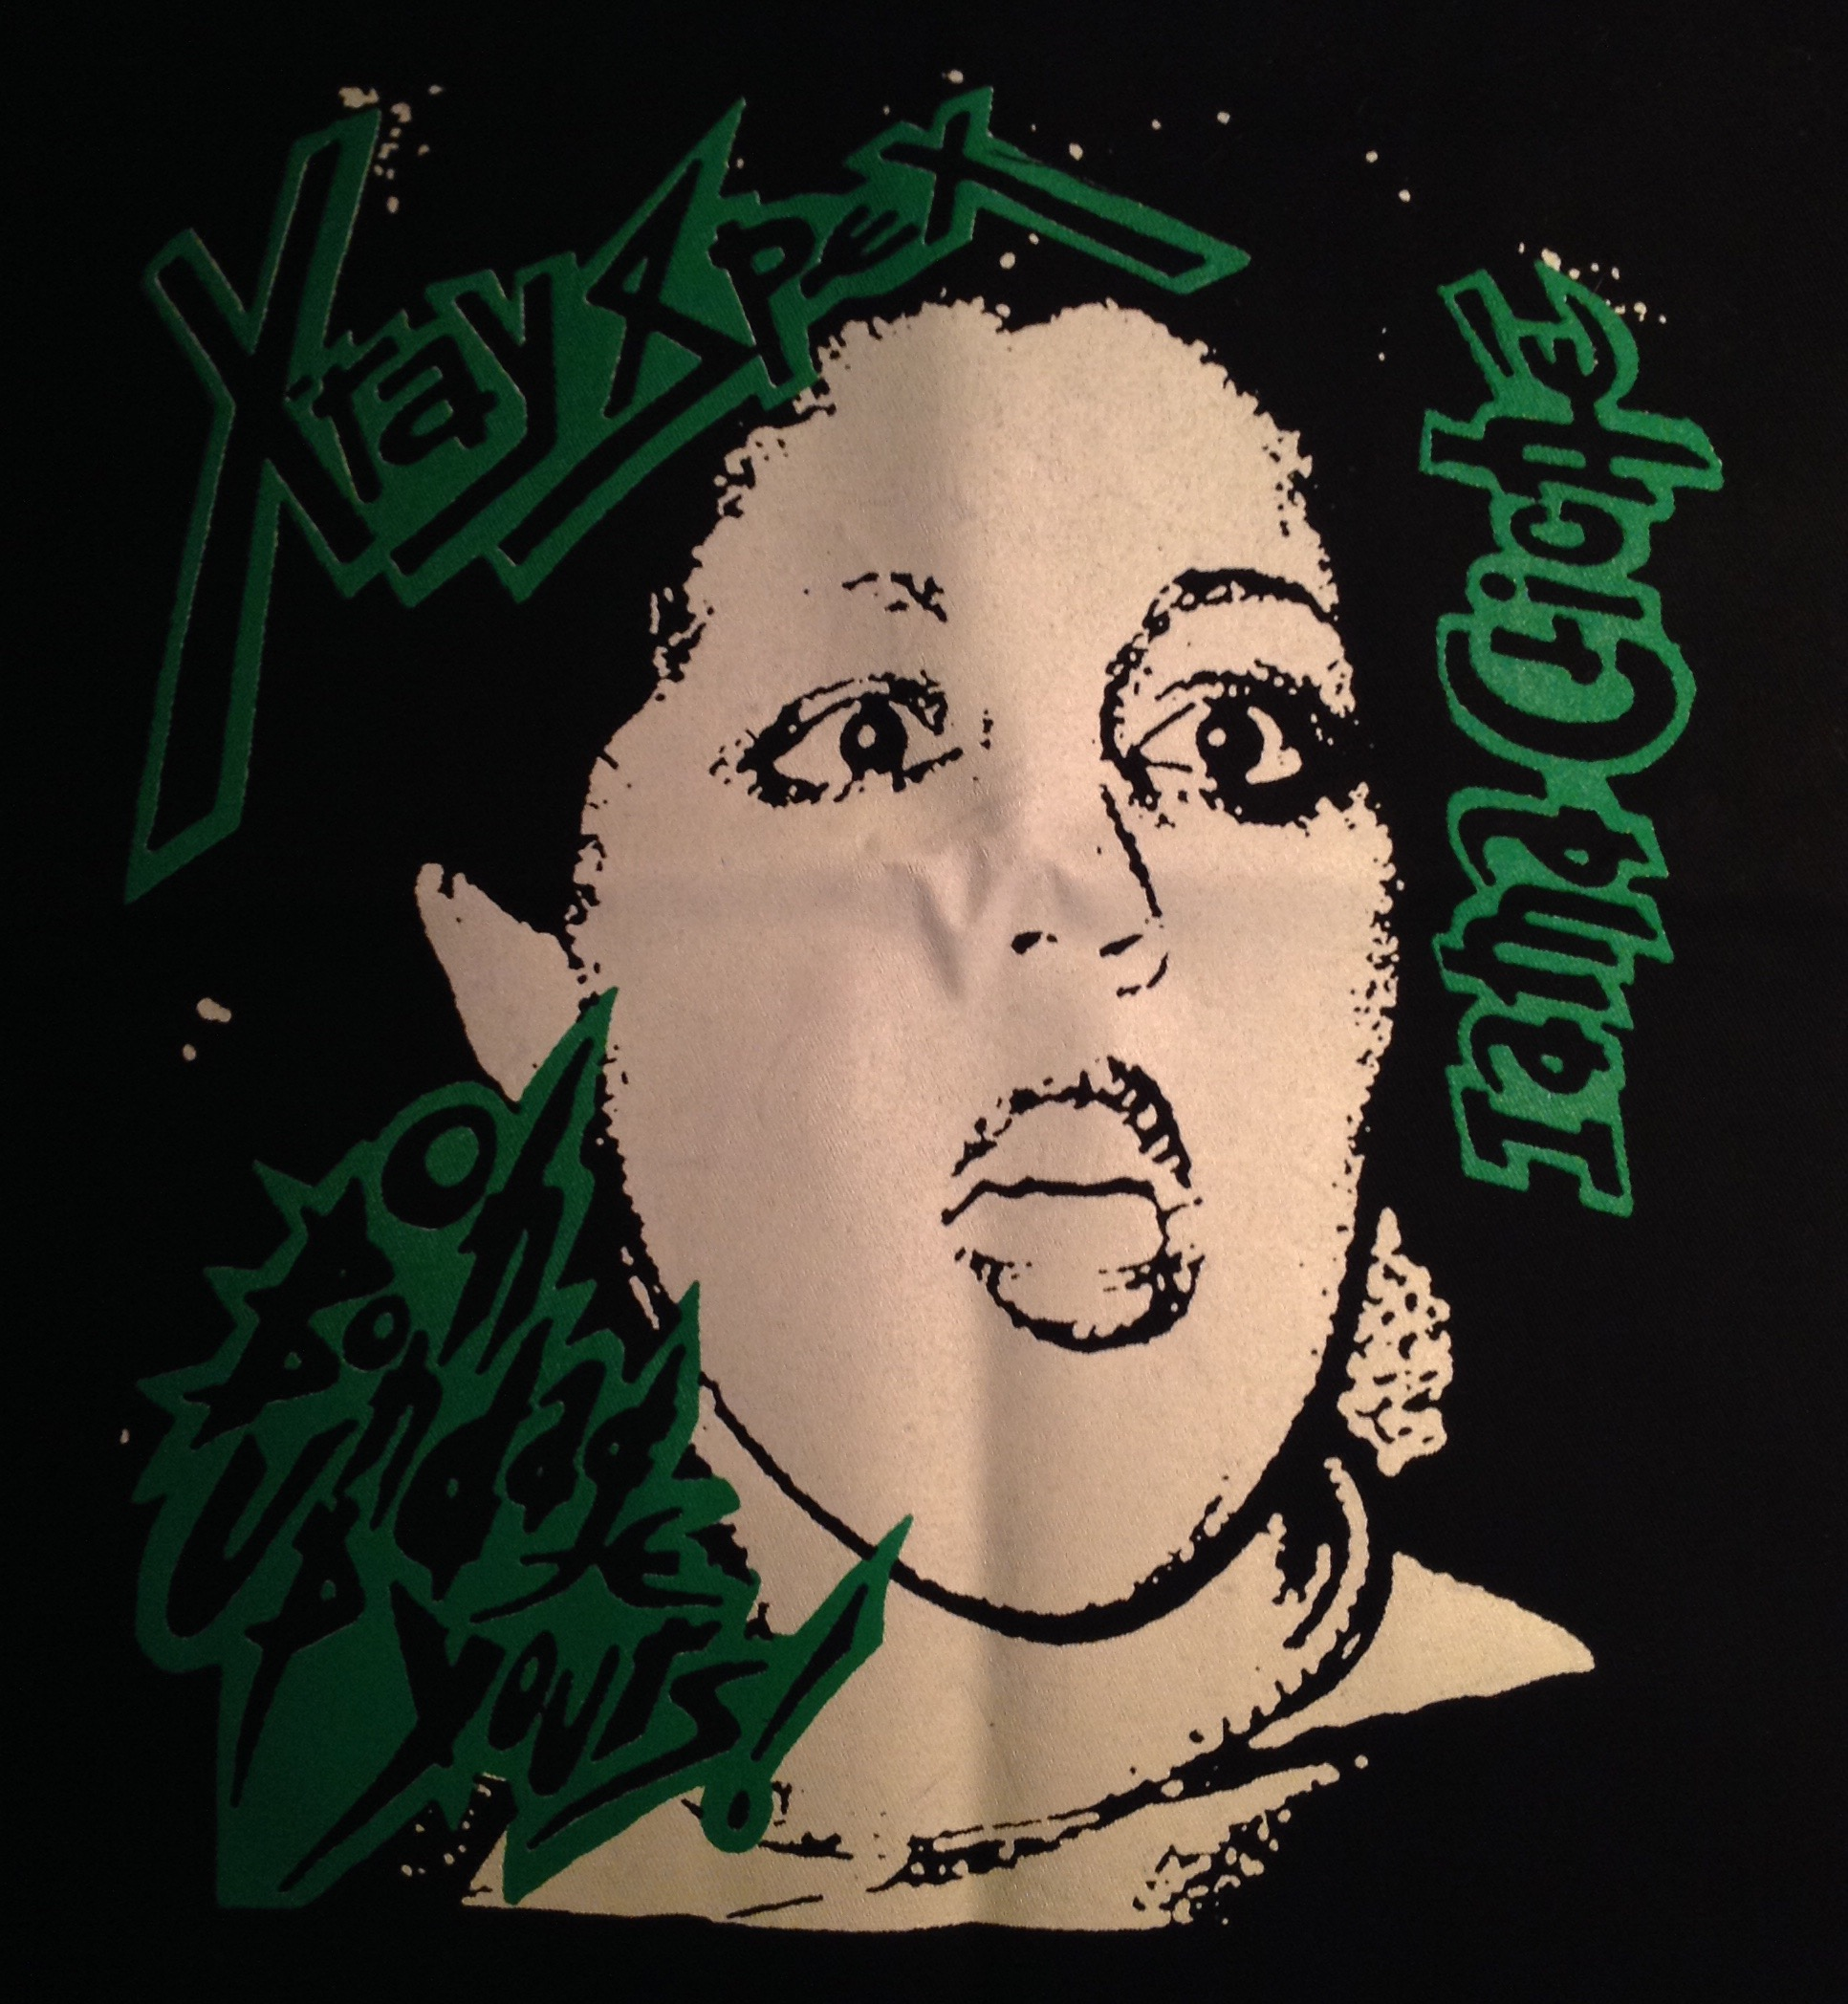 XRAY SPEX - Bondage - Back Patch